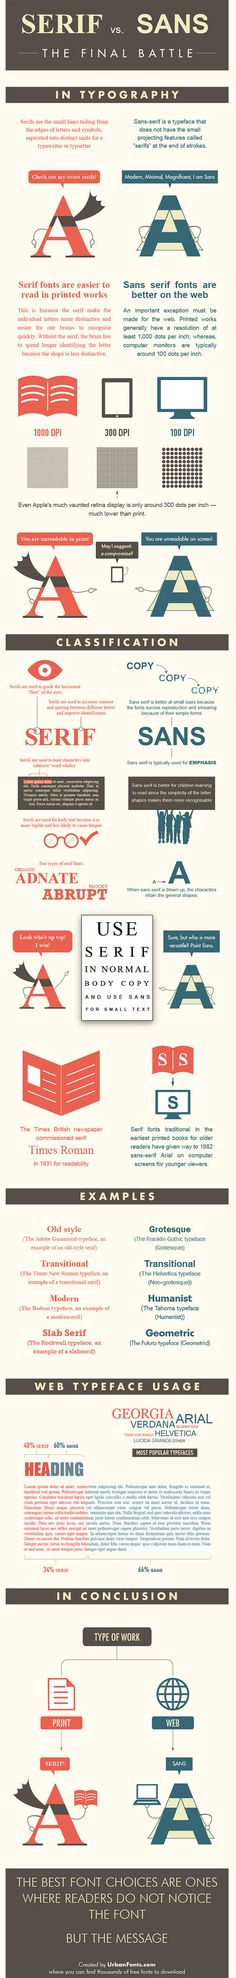 SERIF versus SANS SERIF : the final battle